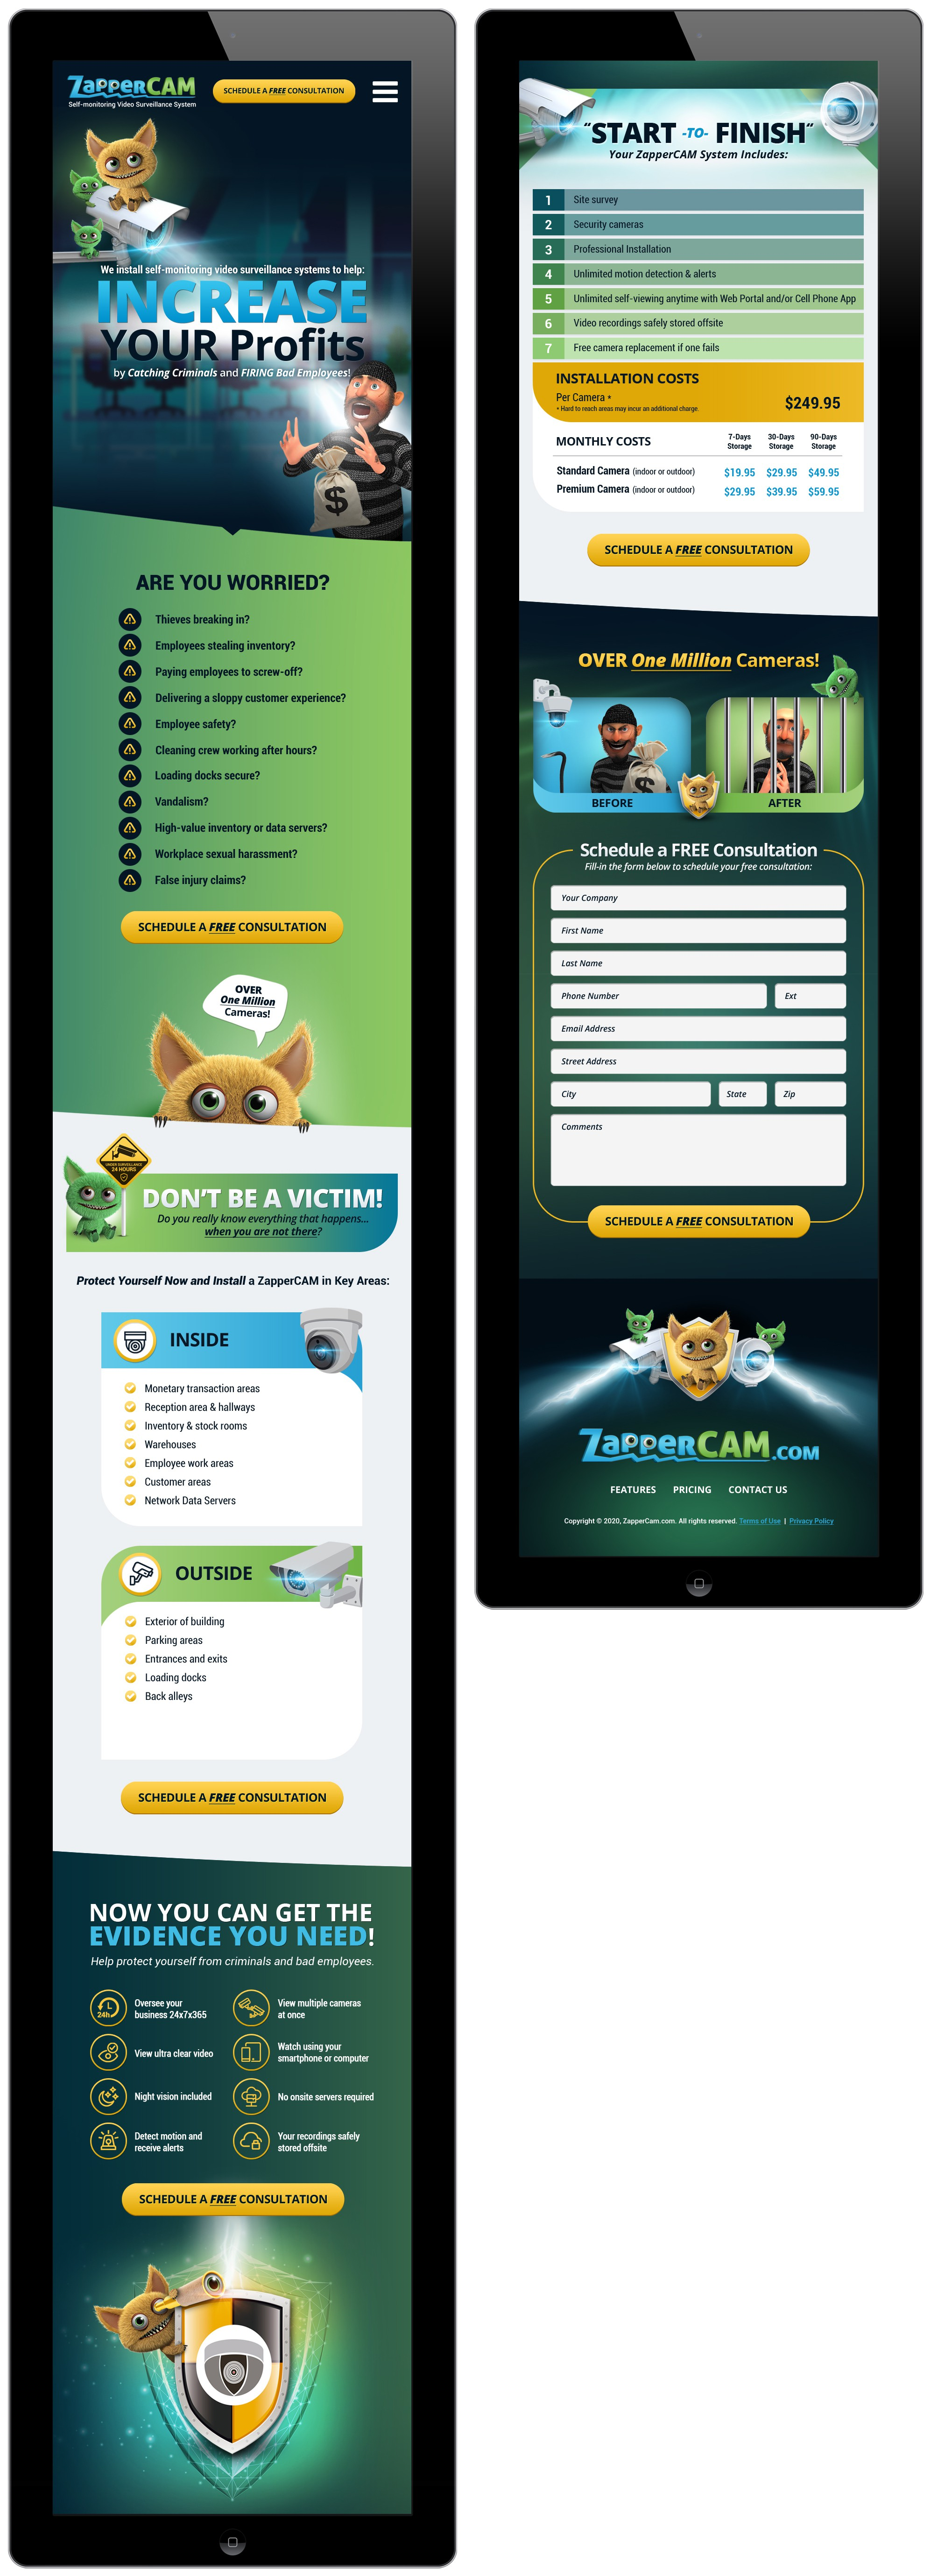 ZapperCAM website - tablet and mobile phone designs